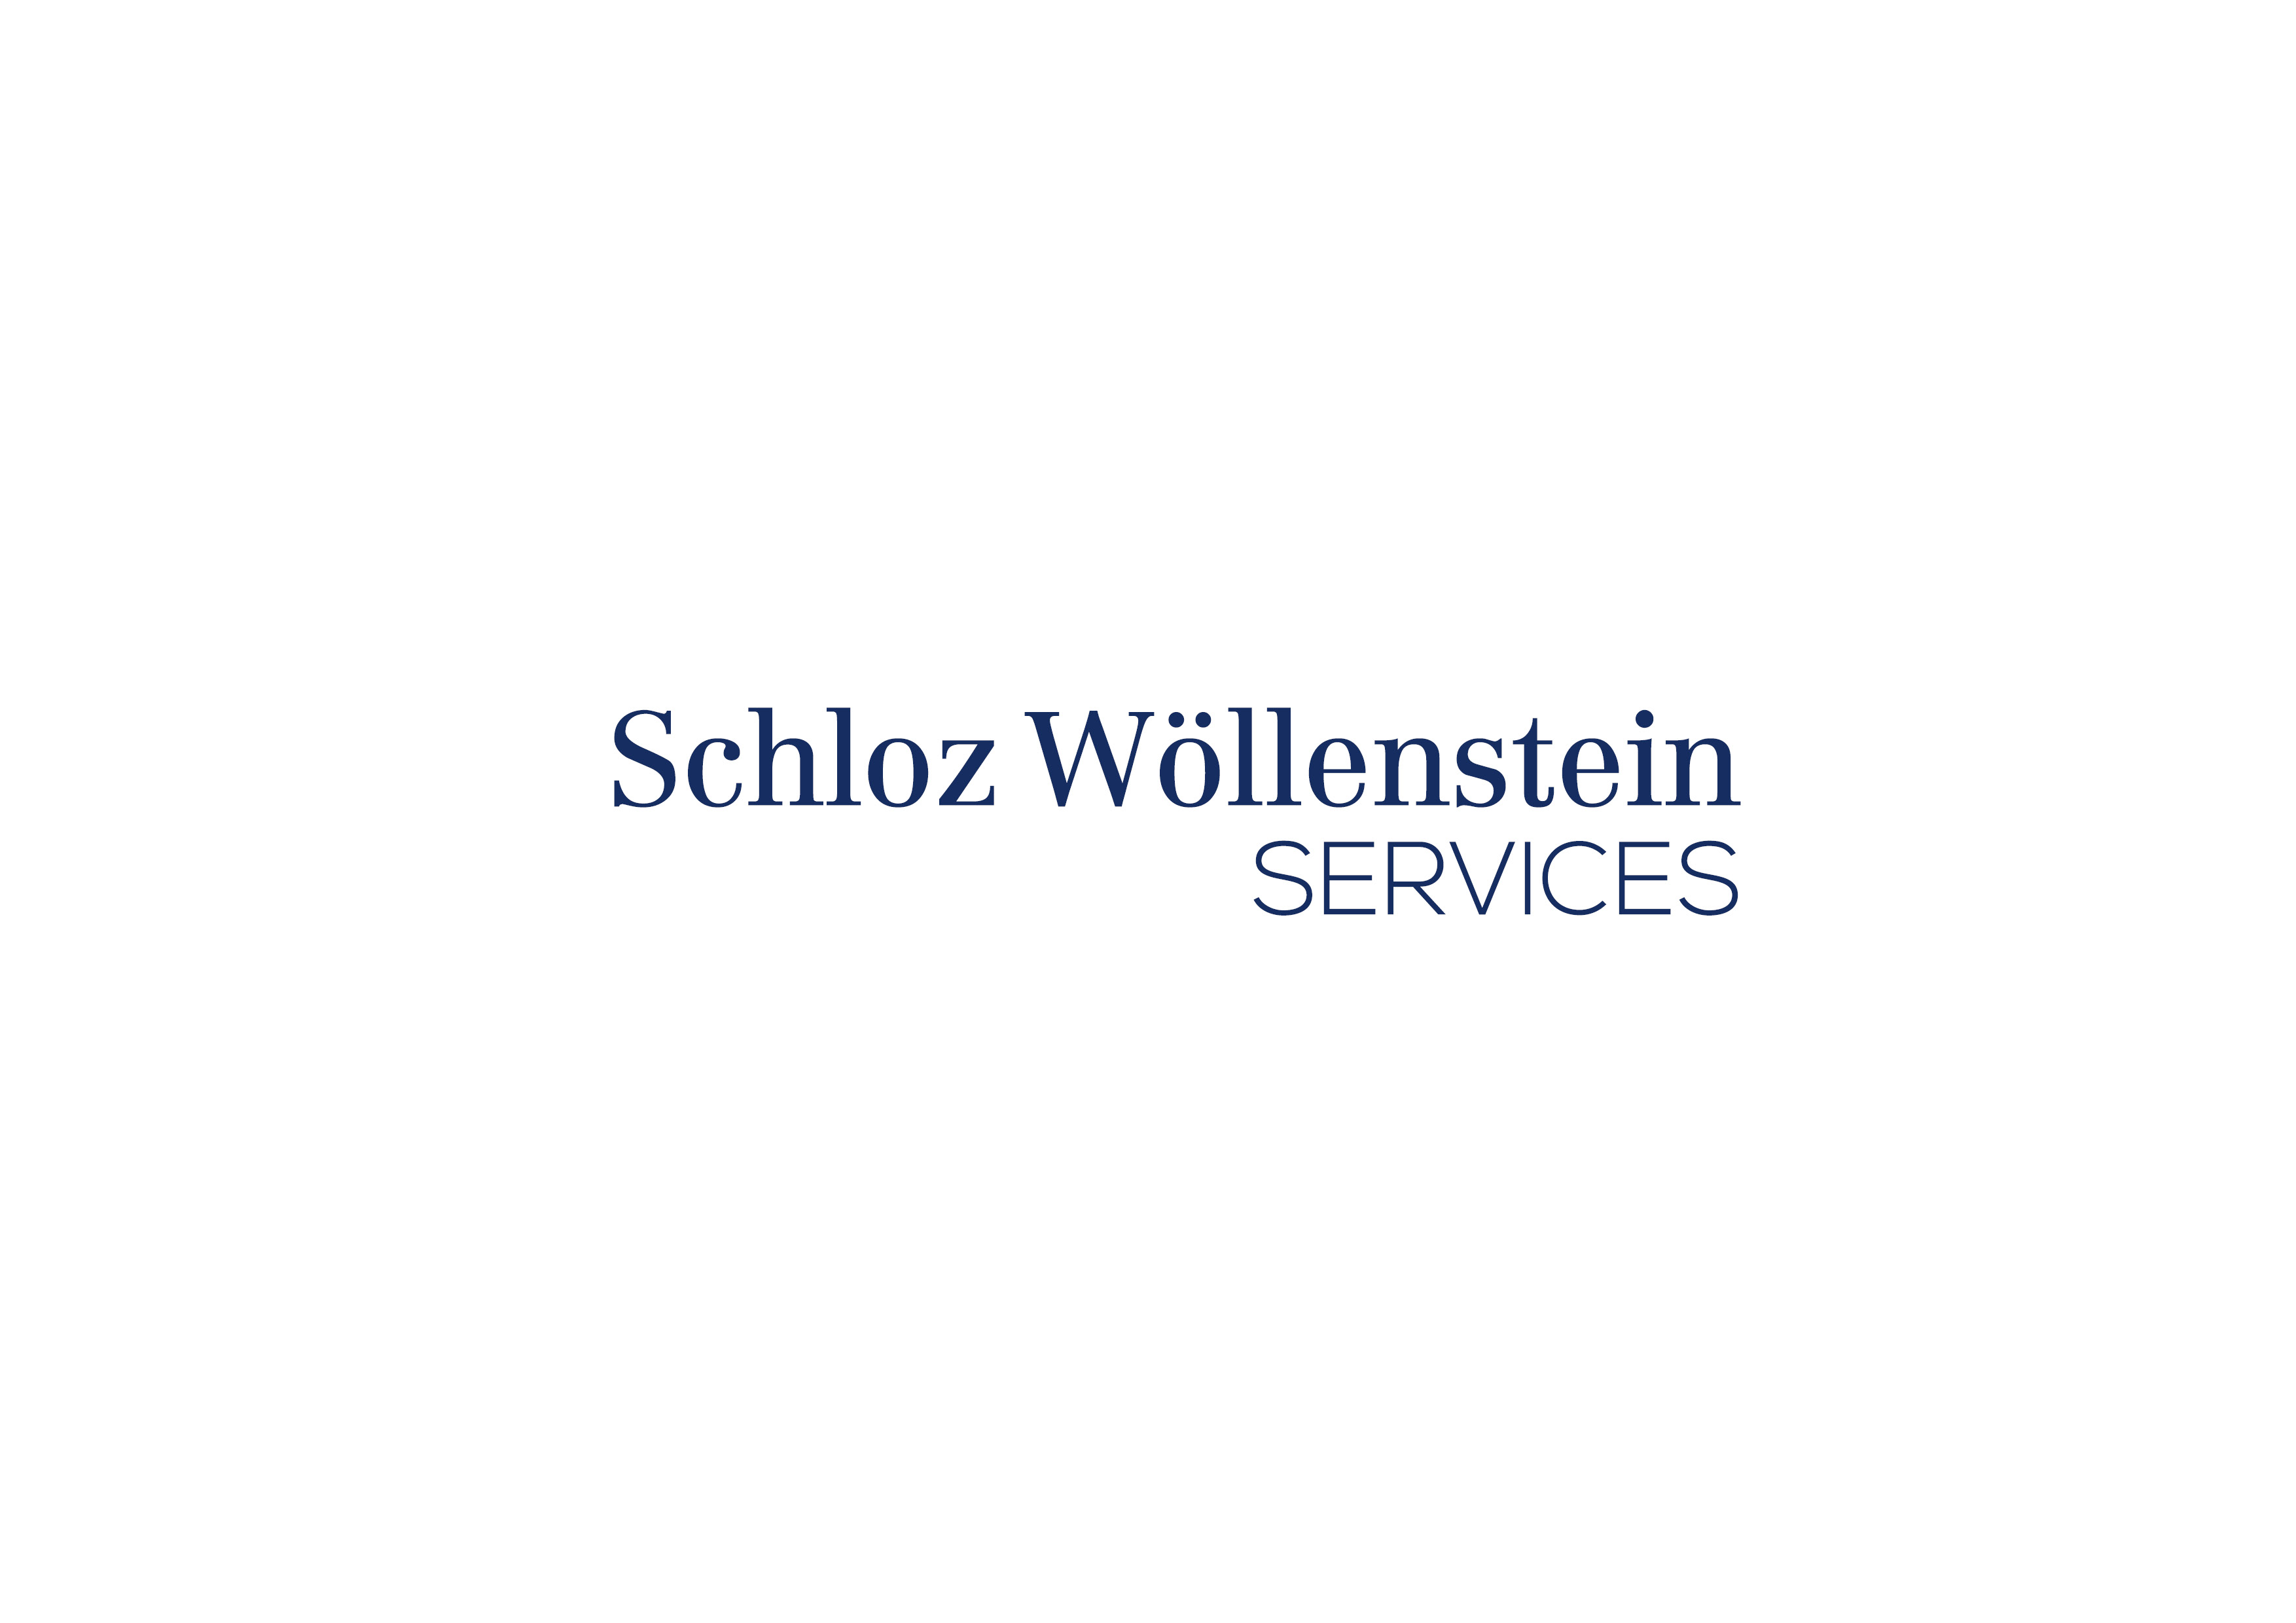 Schloz Wöllenstein Services GmbH & Co. KG